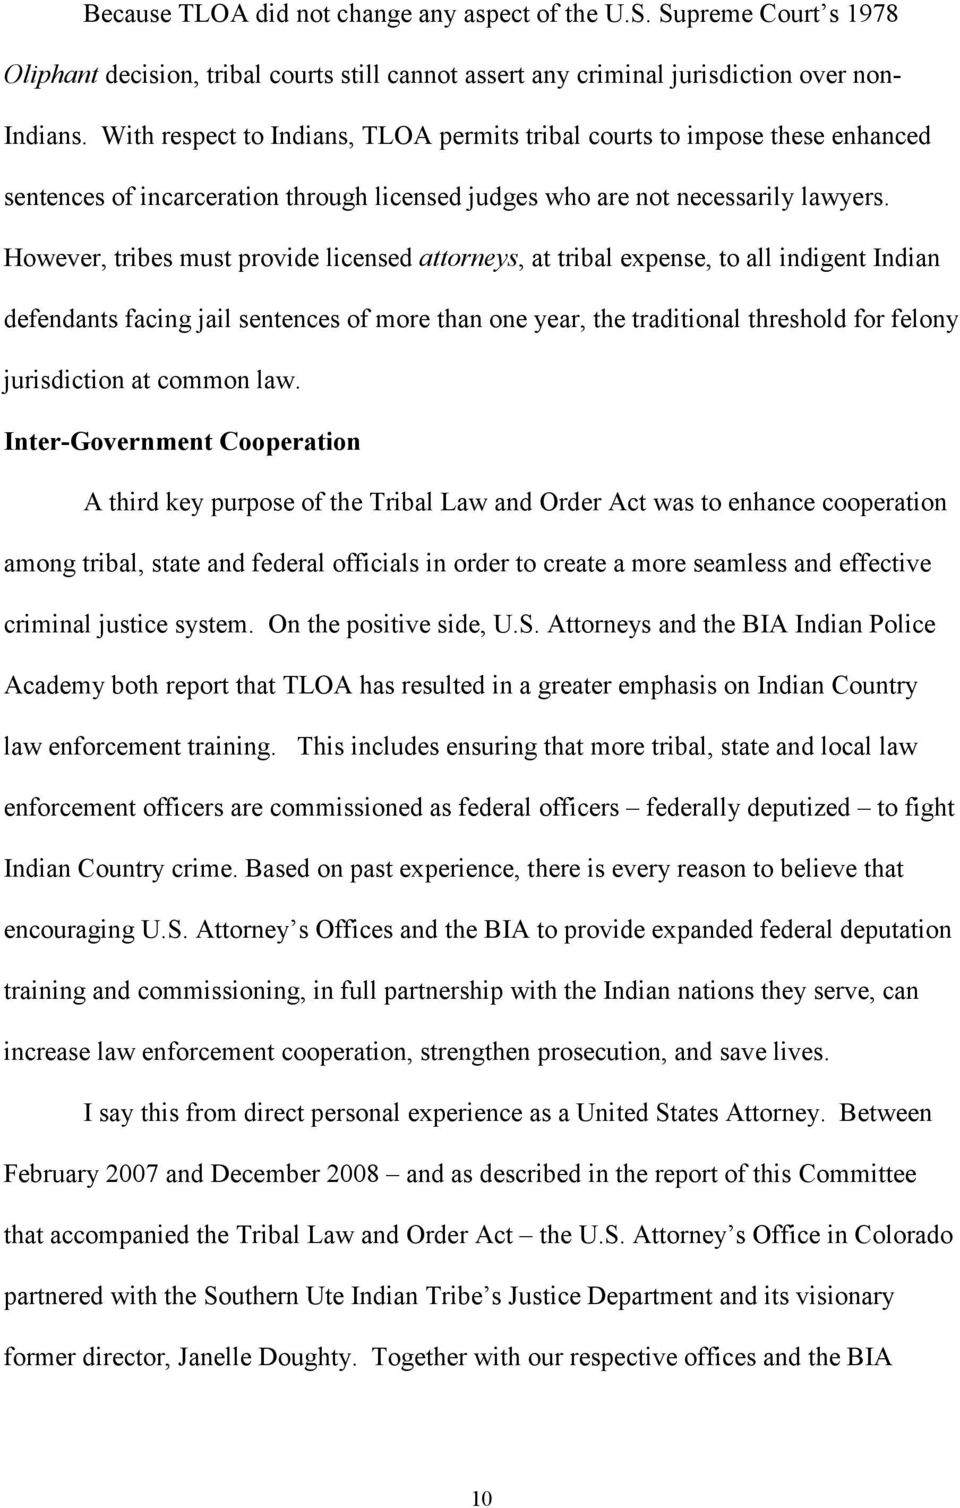 However, tribes must provide licensed attorneys, at tribal expense, to all indigent Indian defendants facing jail sentences of more than one year, the traditional threshold for felony jurisdiction at